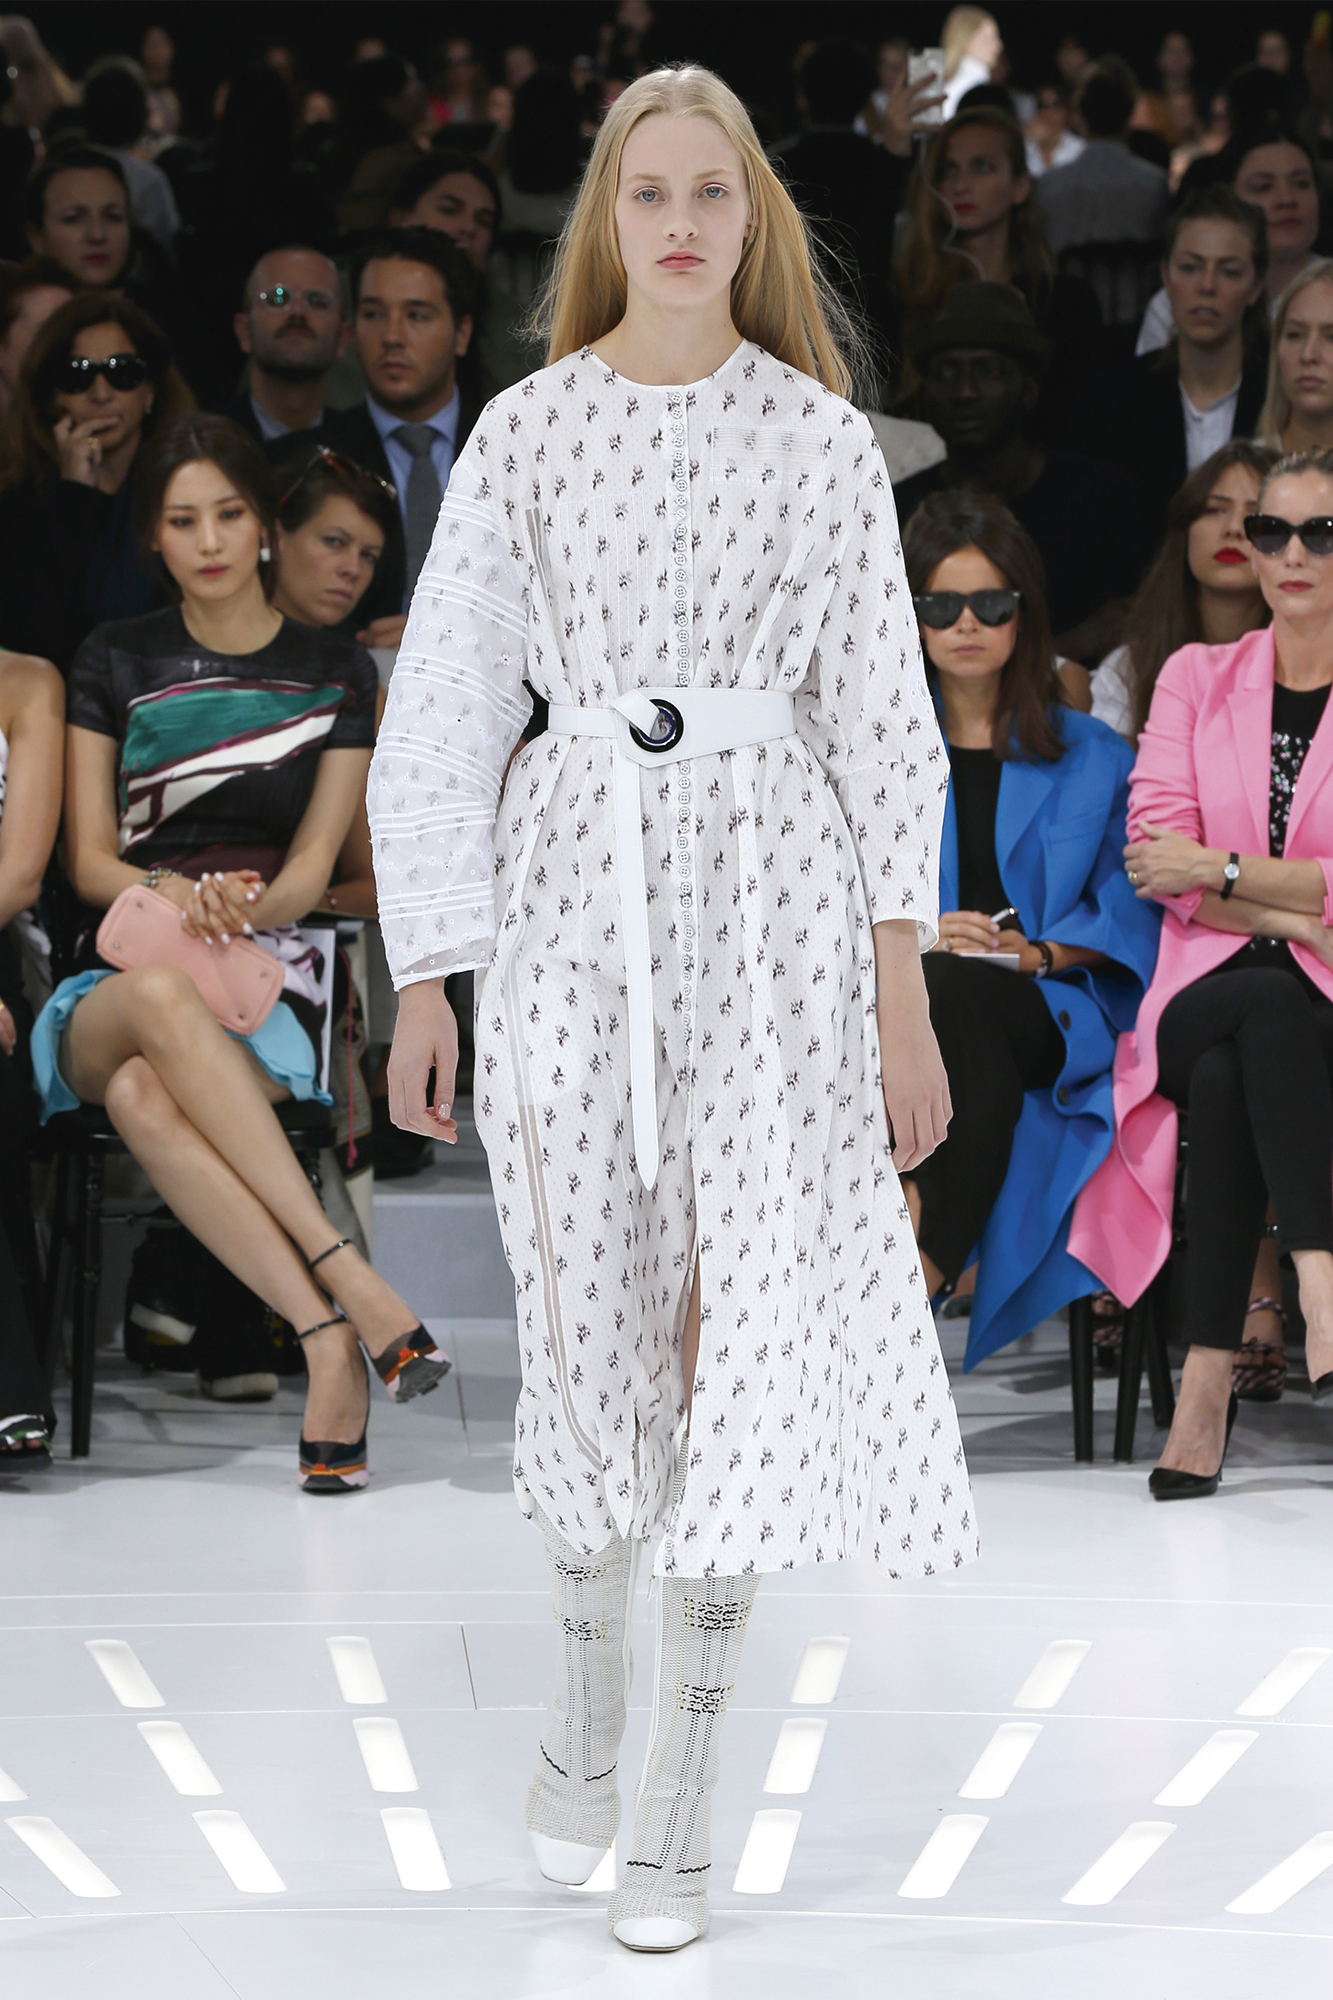 New Western Fashion Christian Dior Ready To Wear Dresses Spring Summer Collection 2015 (11)